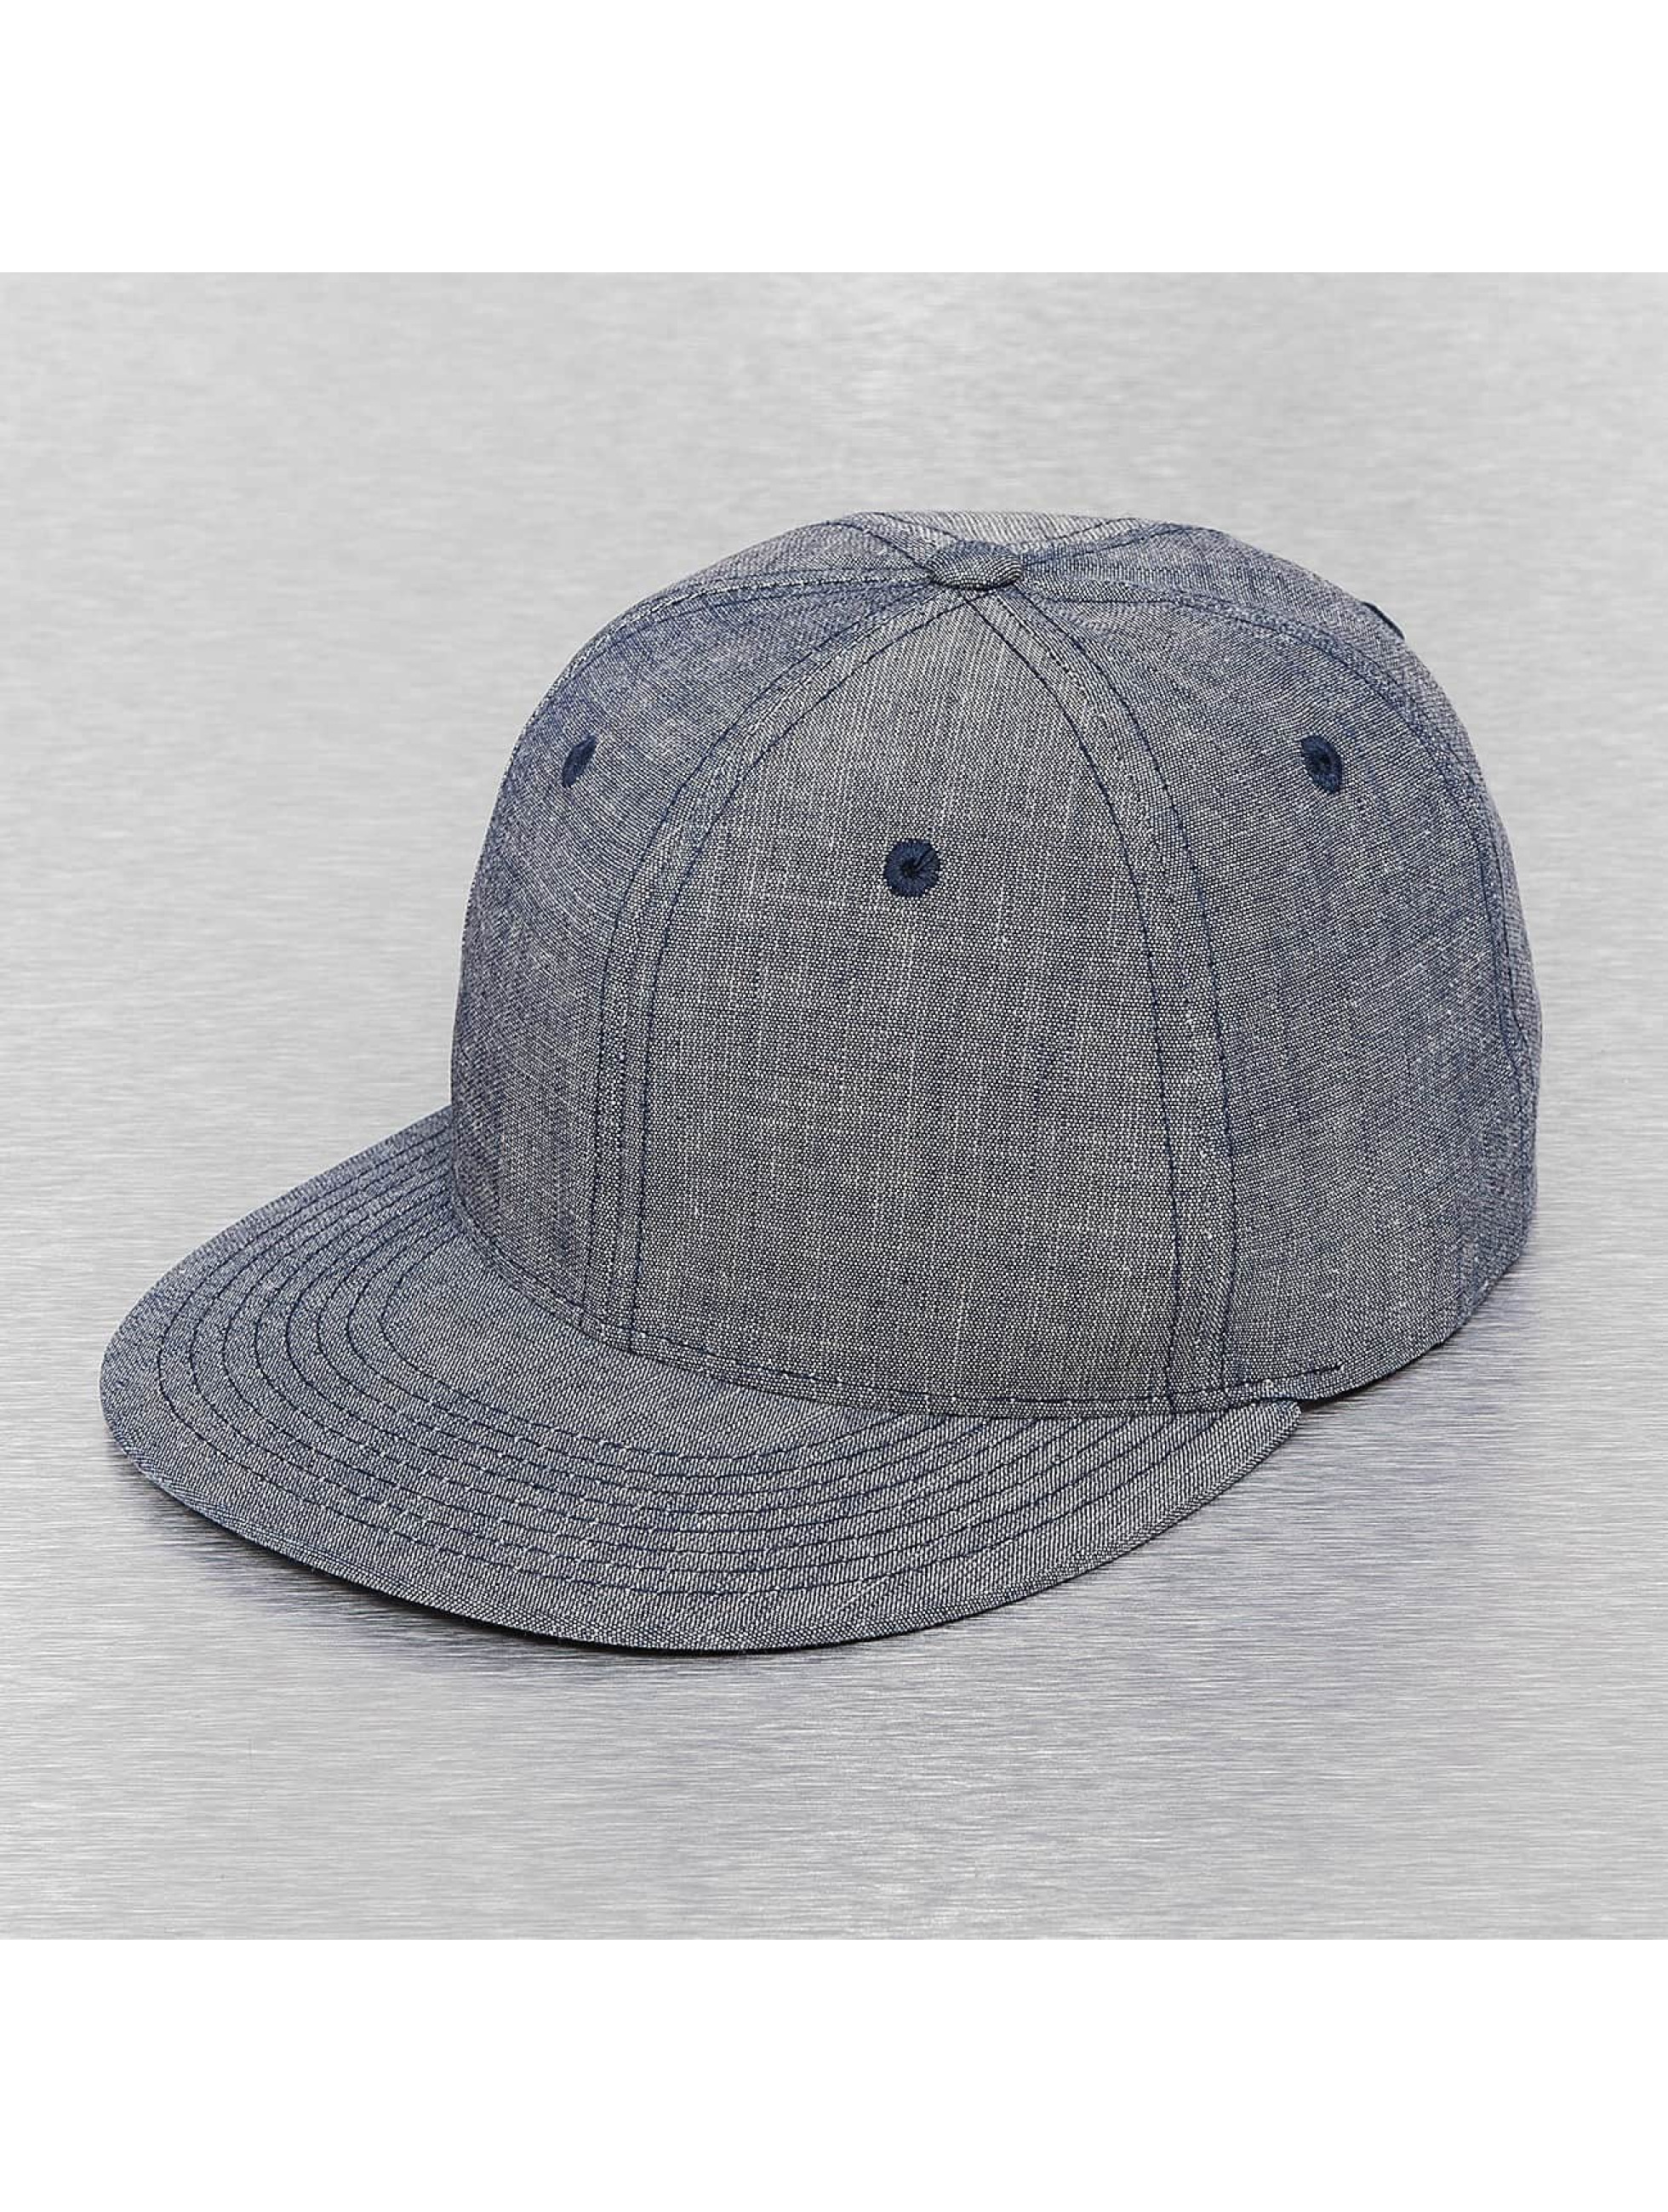 Cap Crony Männer,Frauen Snapback Cap Washed Denim in blau